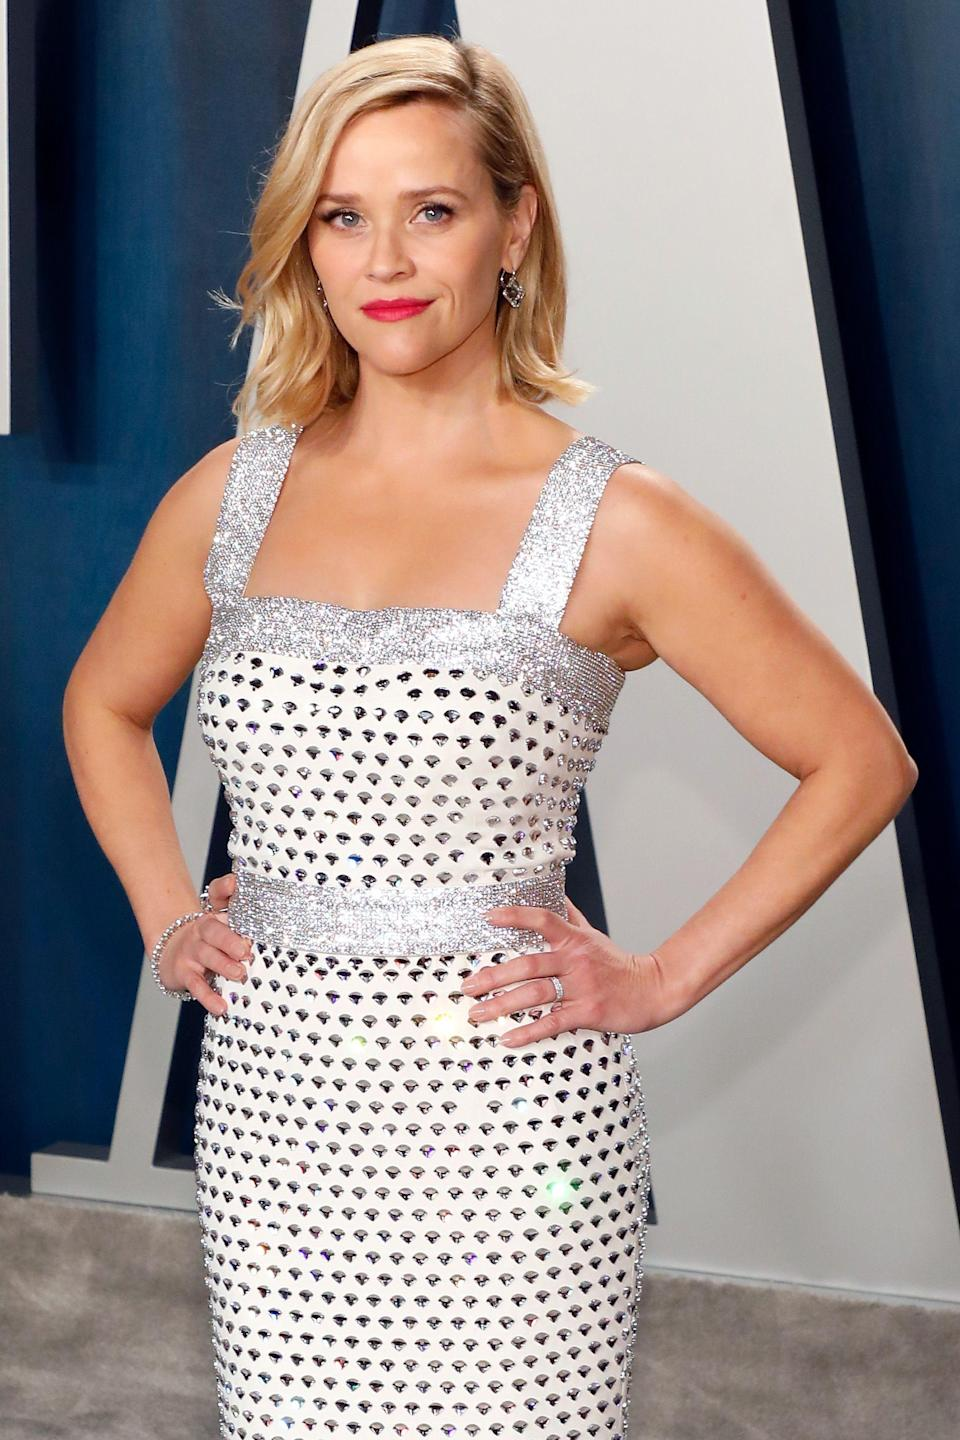 <p>Reese Witherspoon has been in the spotlight for decades, and she still looks as amazing as she did was back in her Cruel Intentions days. At 43, Reese has glowing skin, a healthy attitude on life, and ridiculously chic hair. She also looks really, really fit—not to mention happy. Here's how she looks so great and the health habits she swears by to feel her best—physically and mentally.</p>